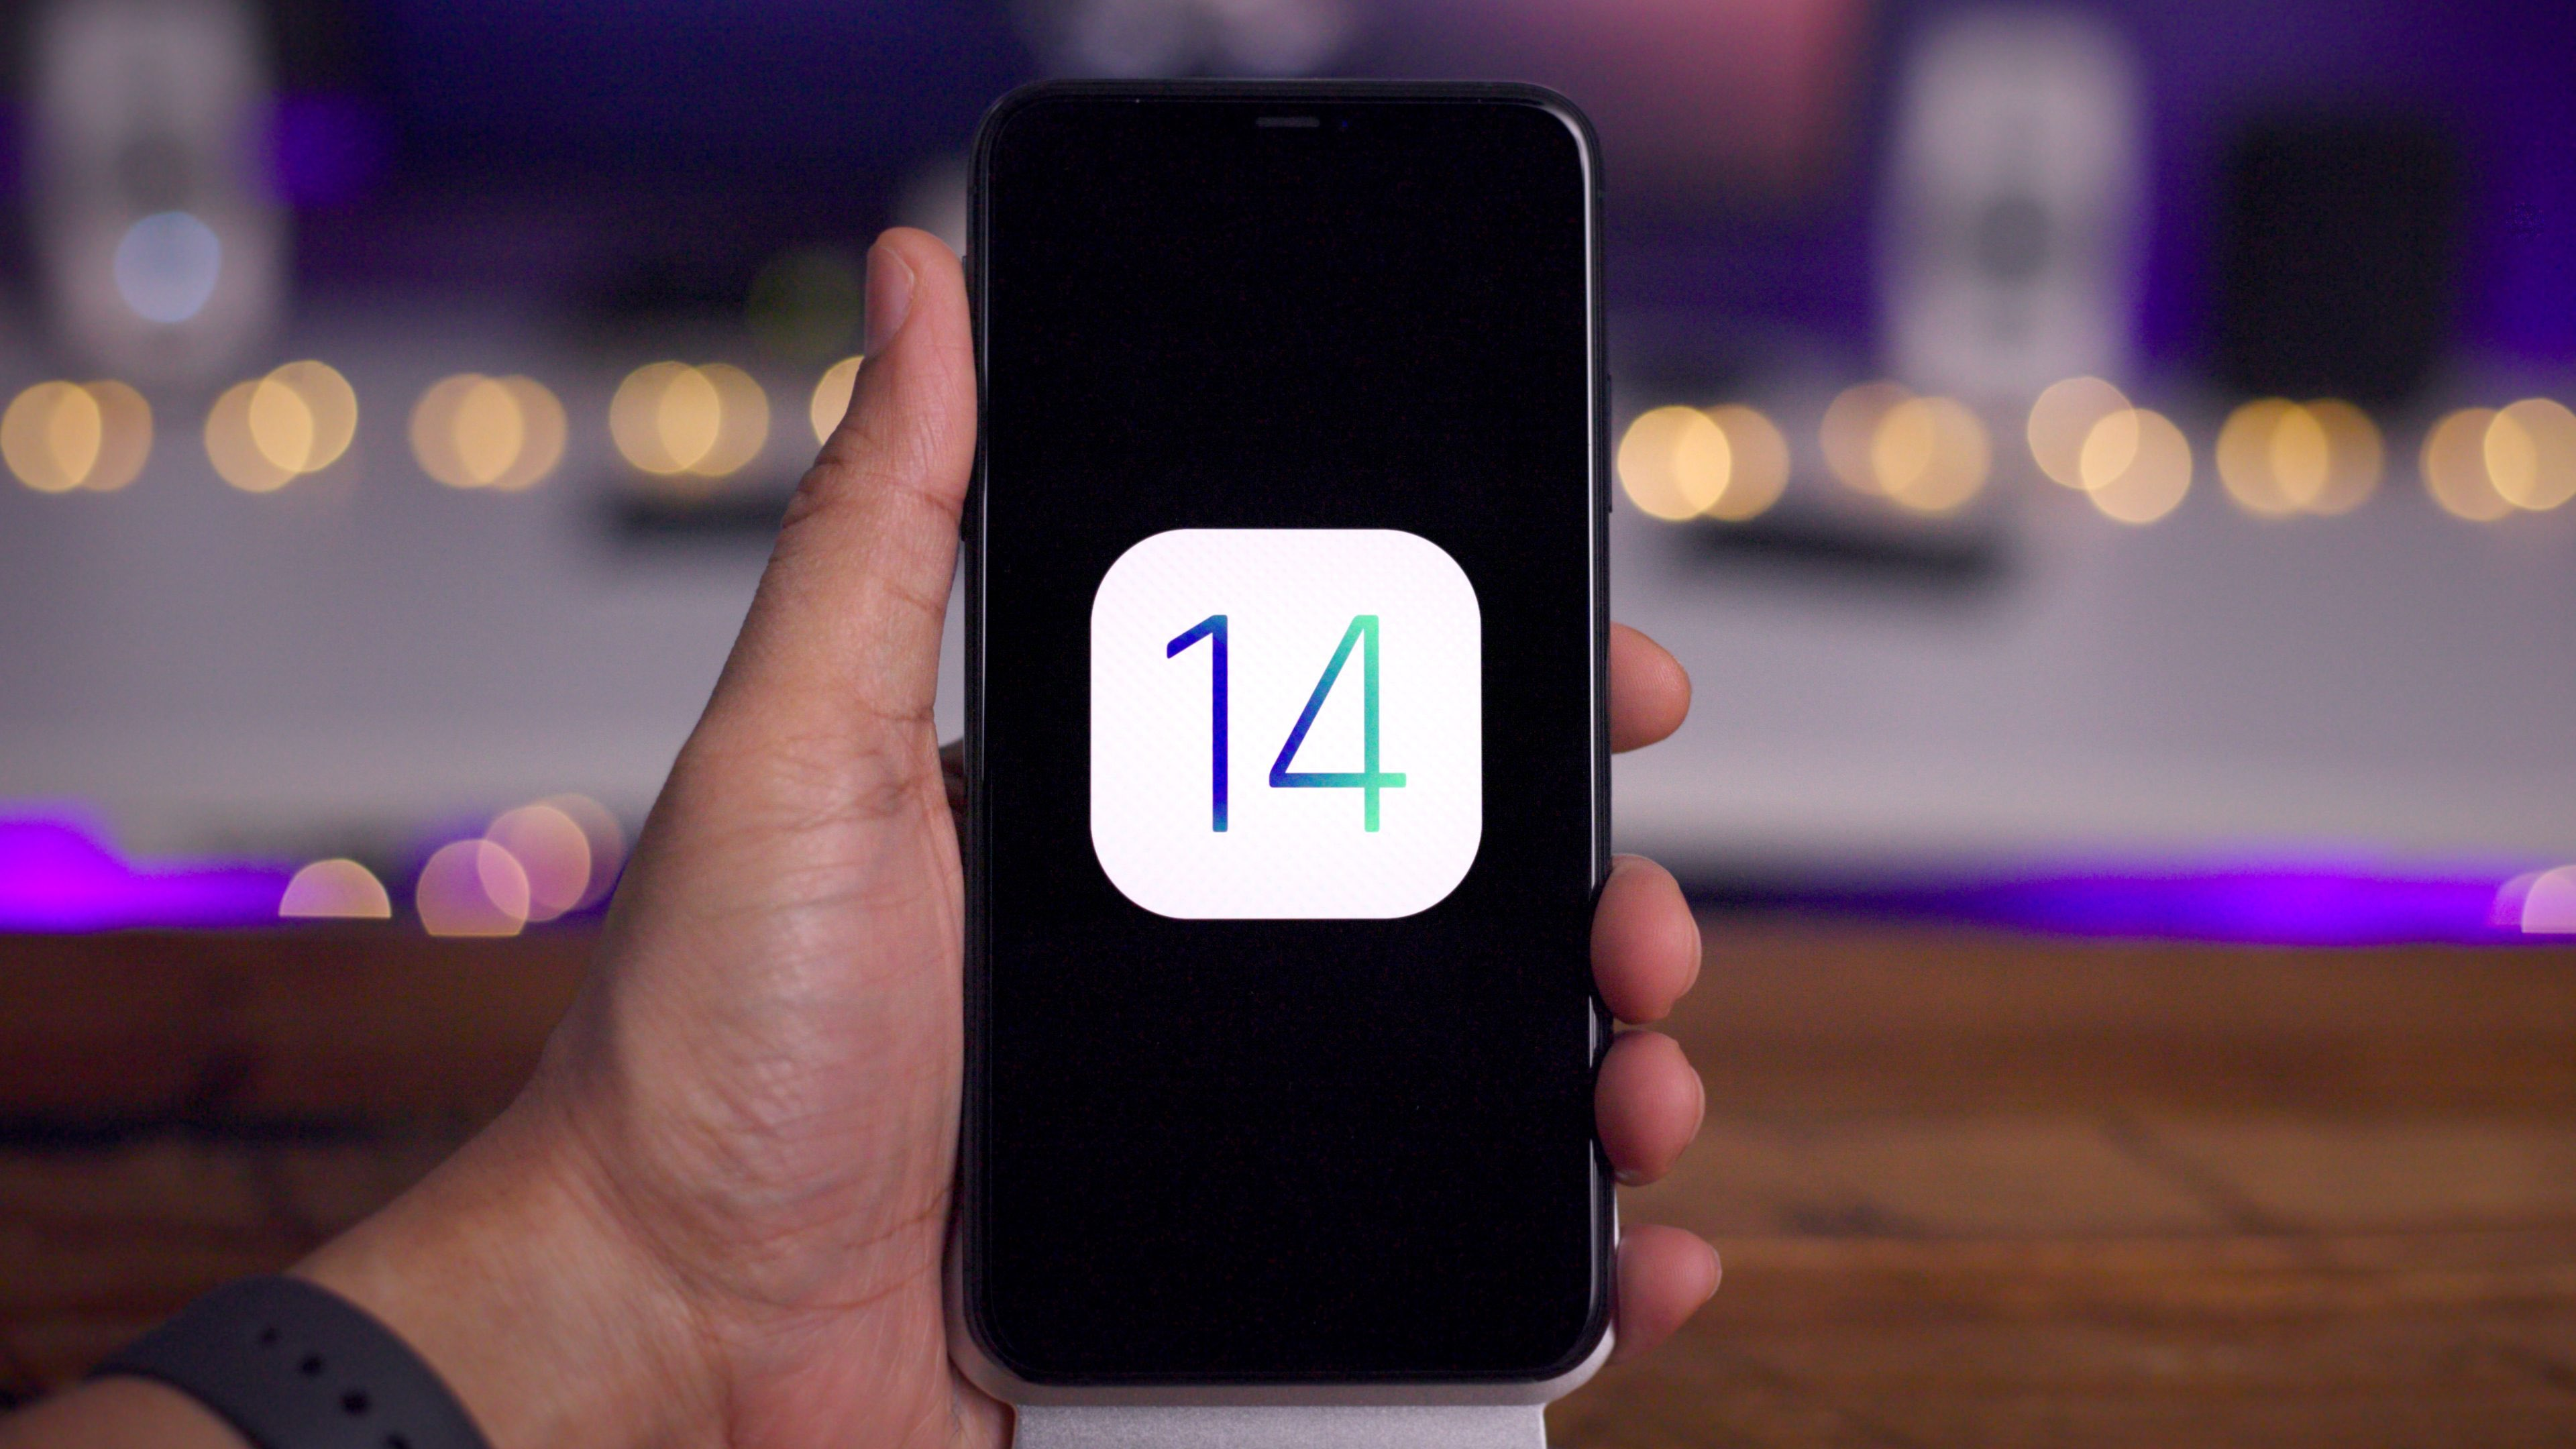 Apple releases iOS 14.0.1 with bug fixes for widgets, default app settings, more